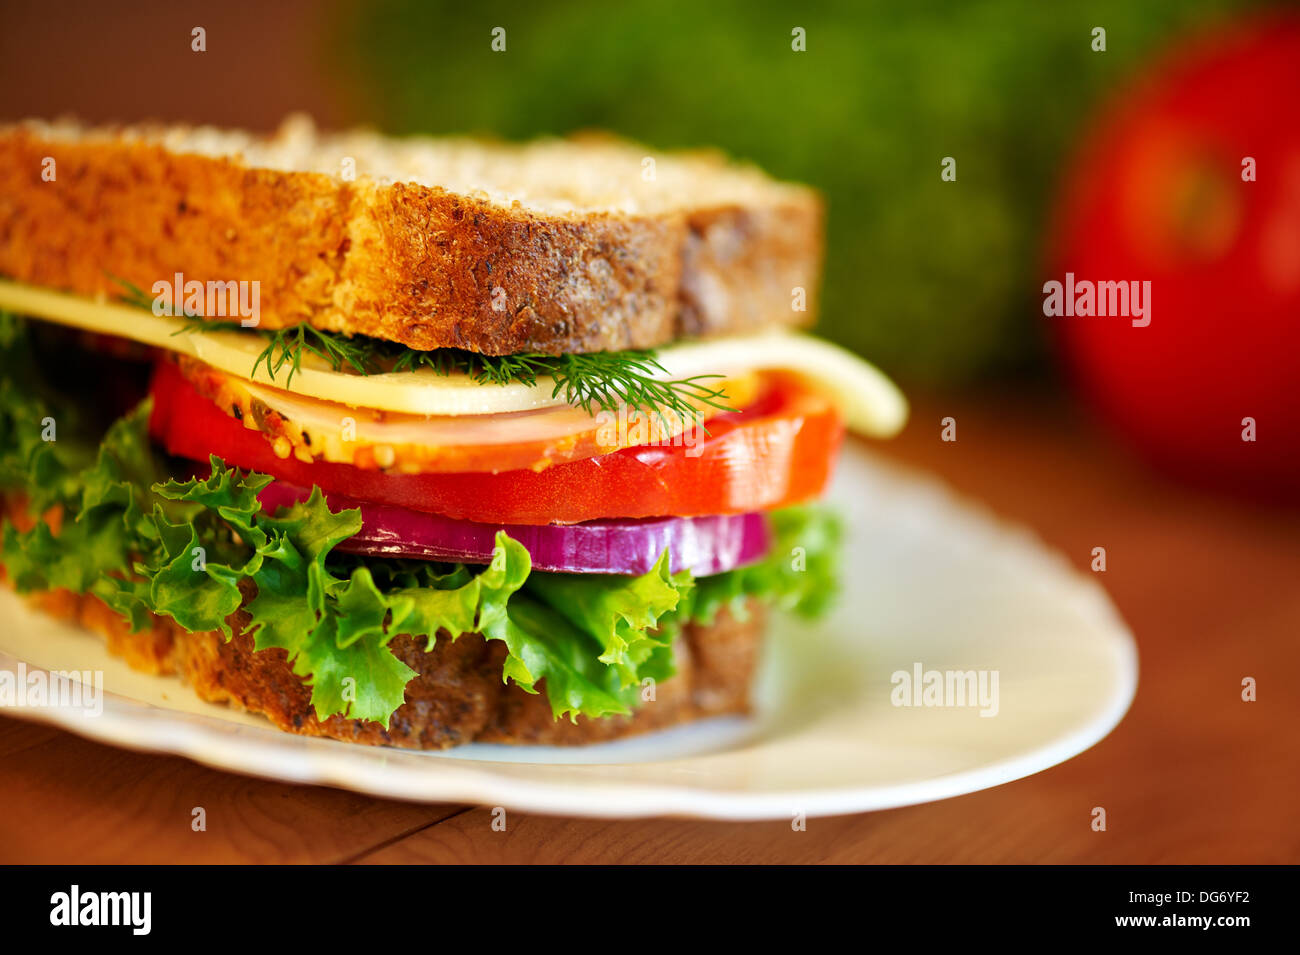 Close up of sandwich. Shalow DOF. Selective focus. - Stock Image